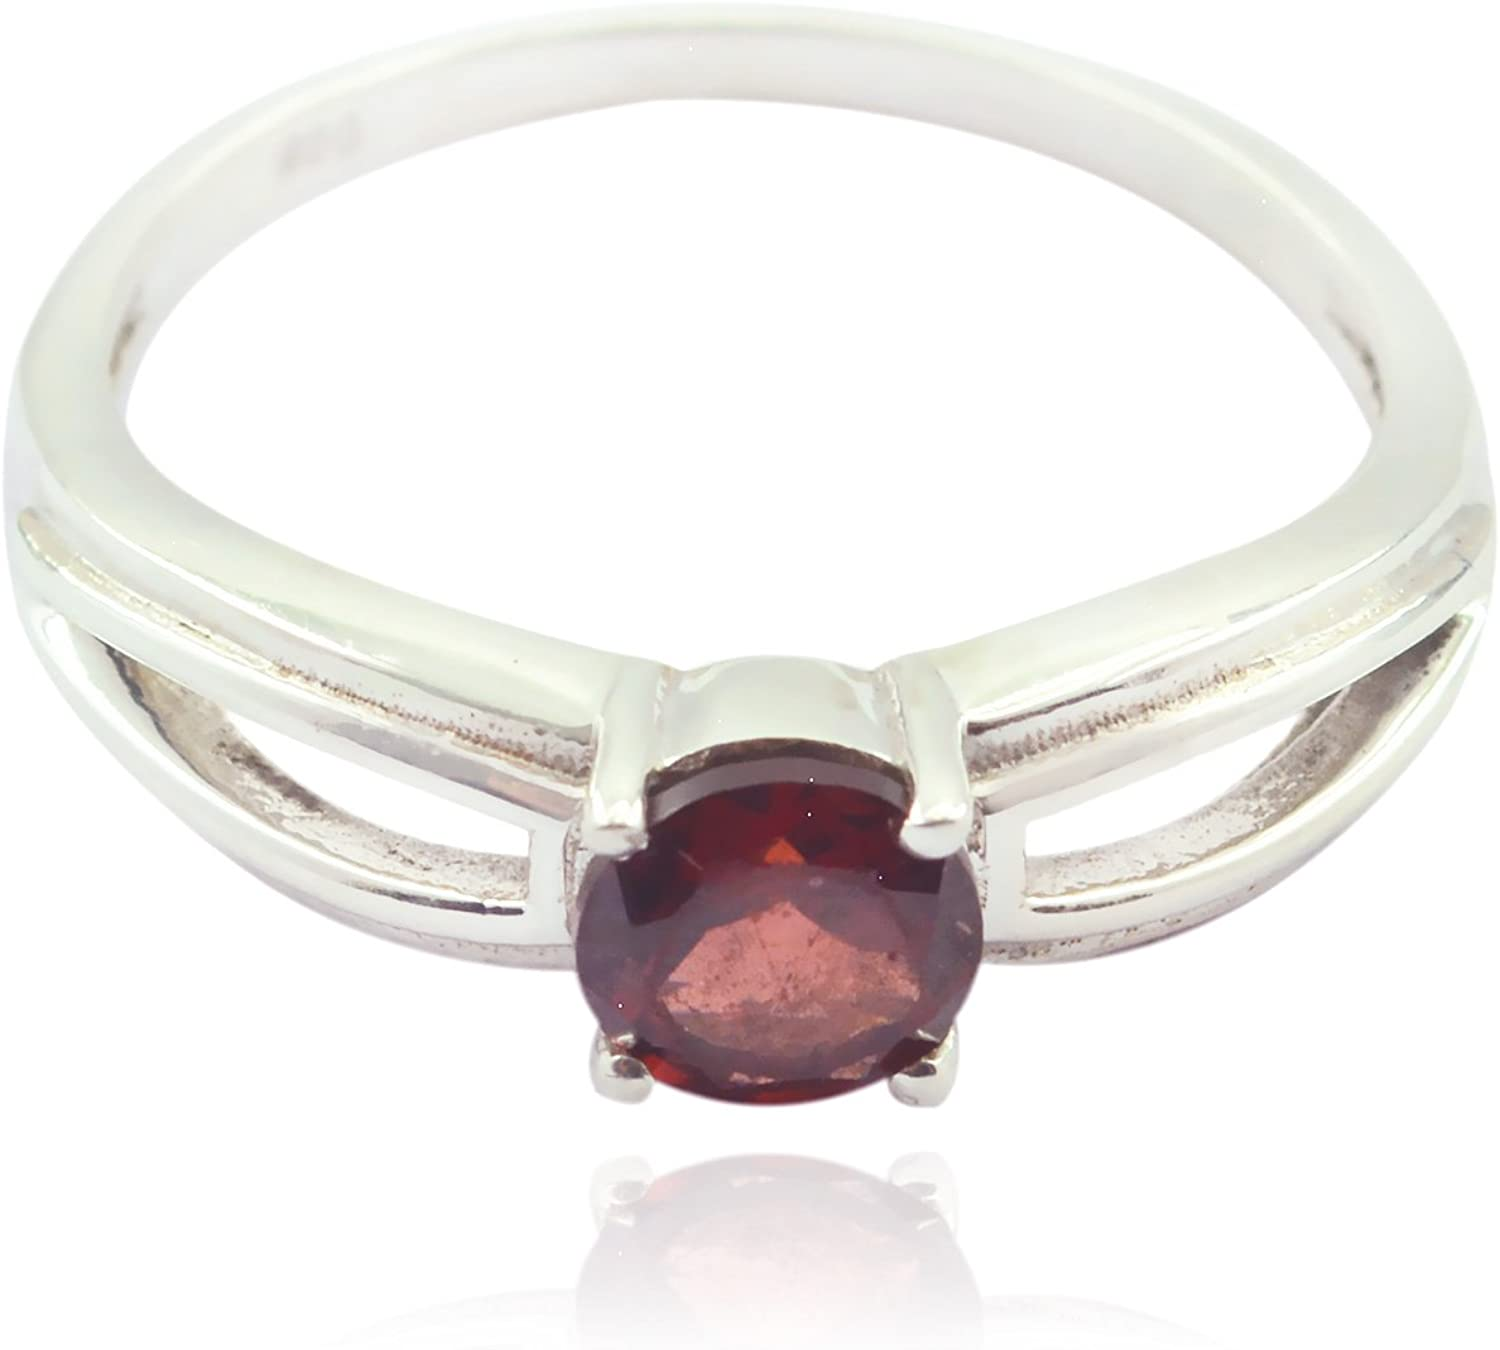 Jewellery Most Item Gift for Wife Real Gemstones Round Faceted Garnet Ring 925 Sterling Silver Red Garnet Real Gemstones Ring